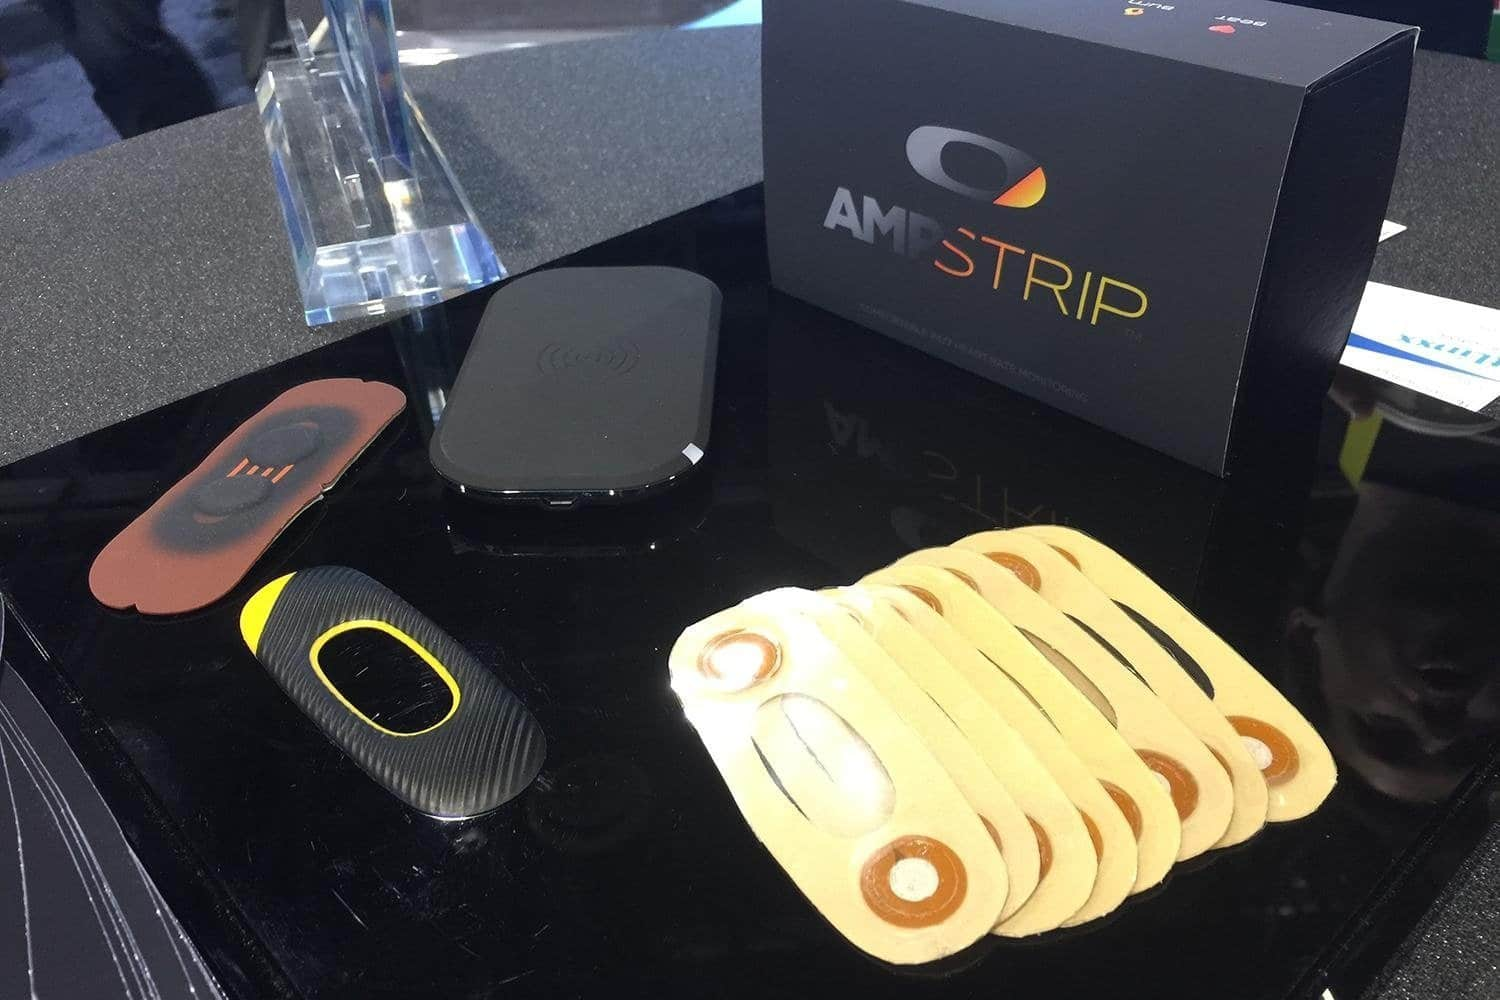 CES 2015: Top Gadgets of CES 2015 on Day-1 - 4